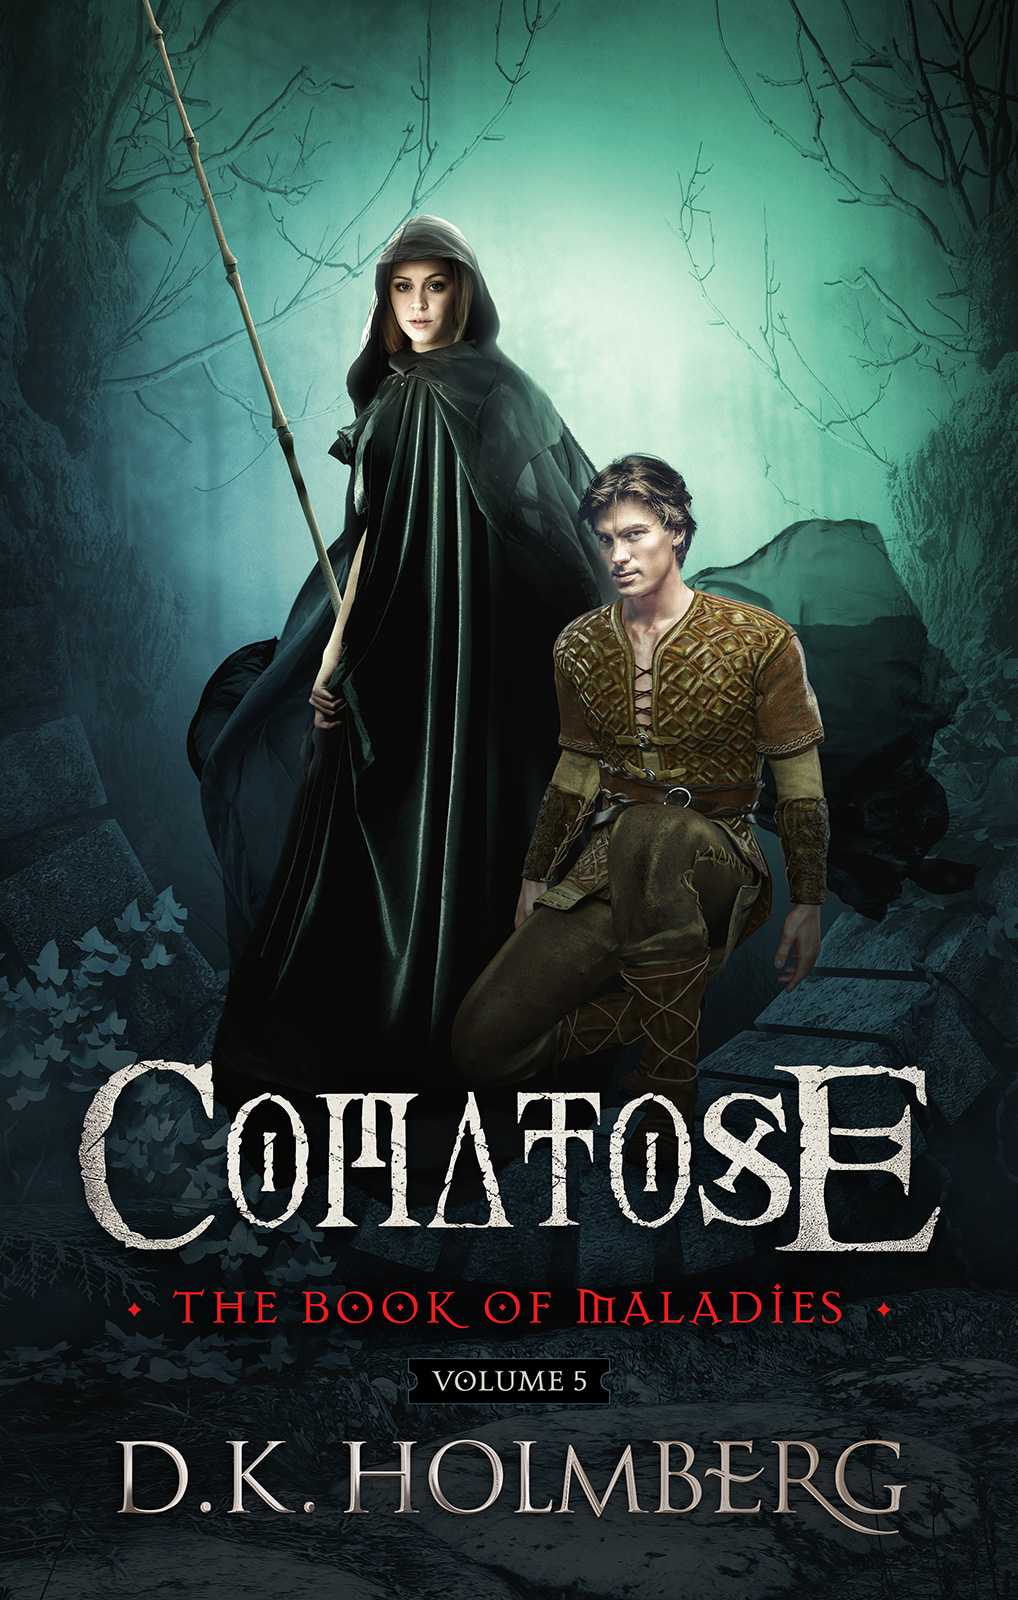 Comatose by DK Holmberg